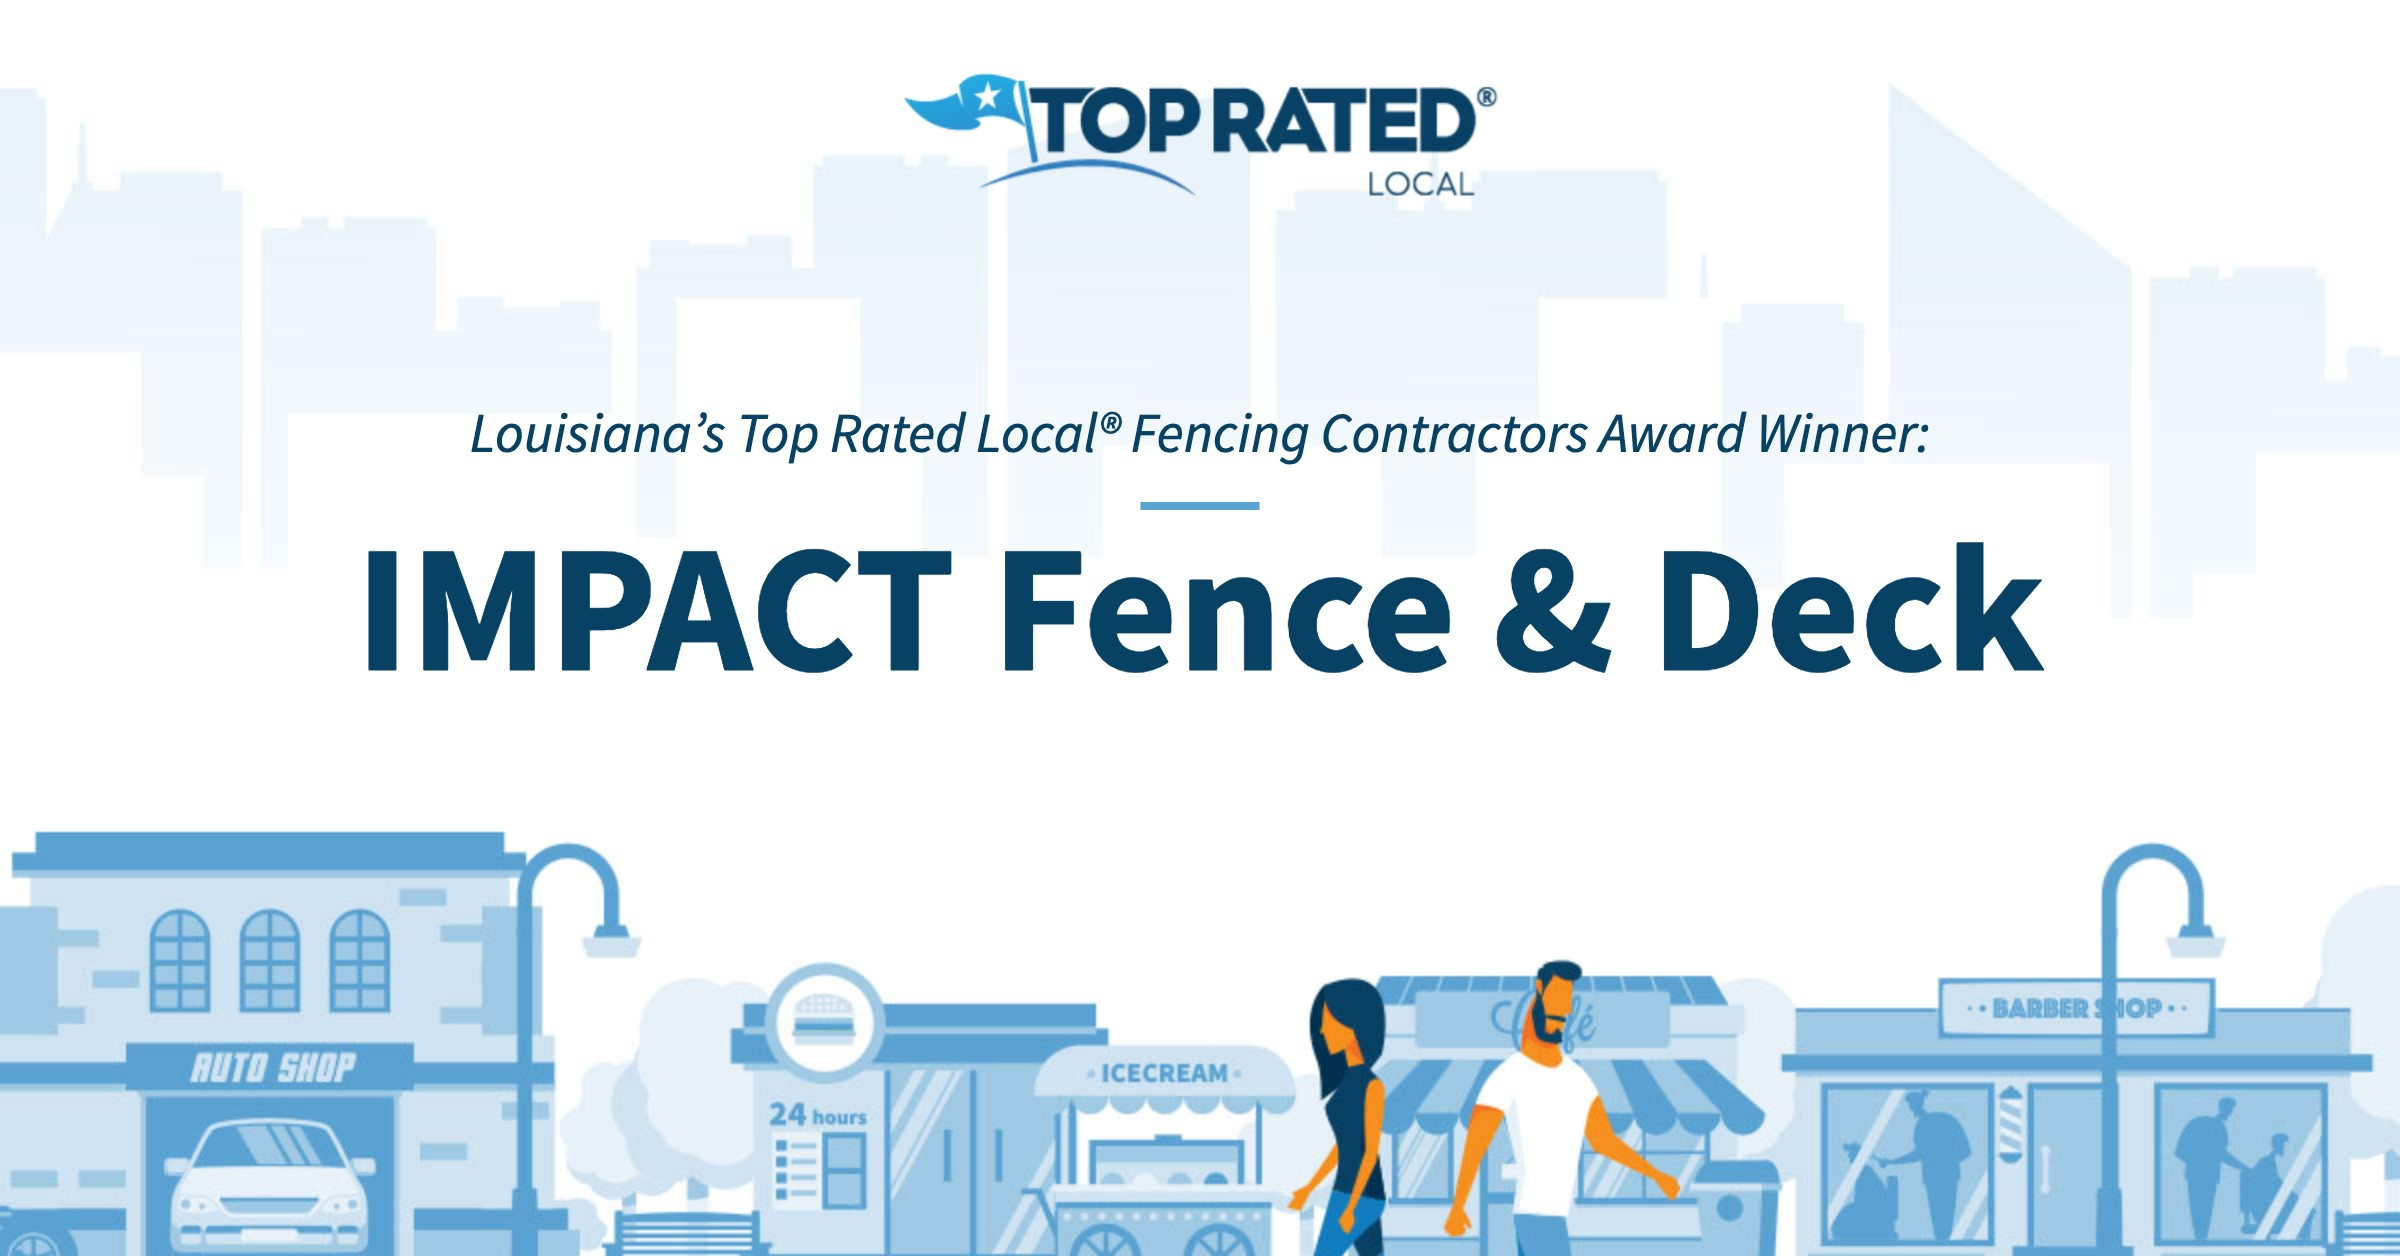 Louisiana's Top Rated Local® Fencing Contractors Award Winner: IMPACT Fence & Deck